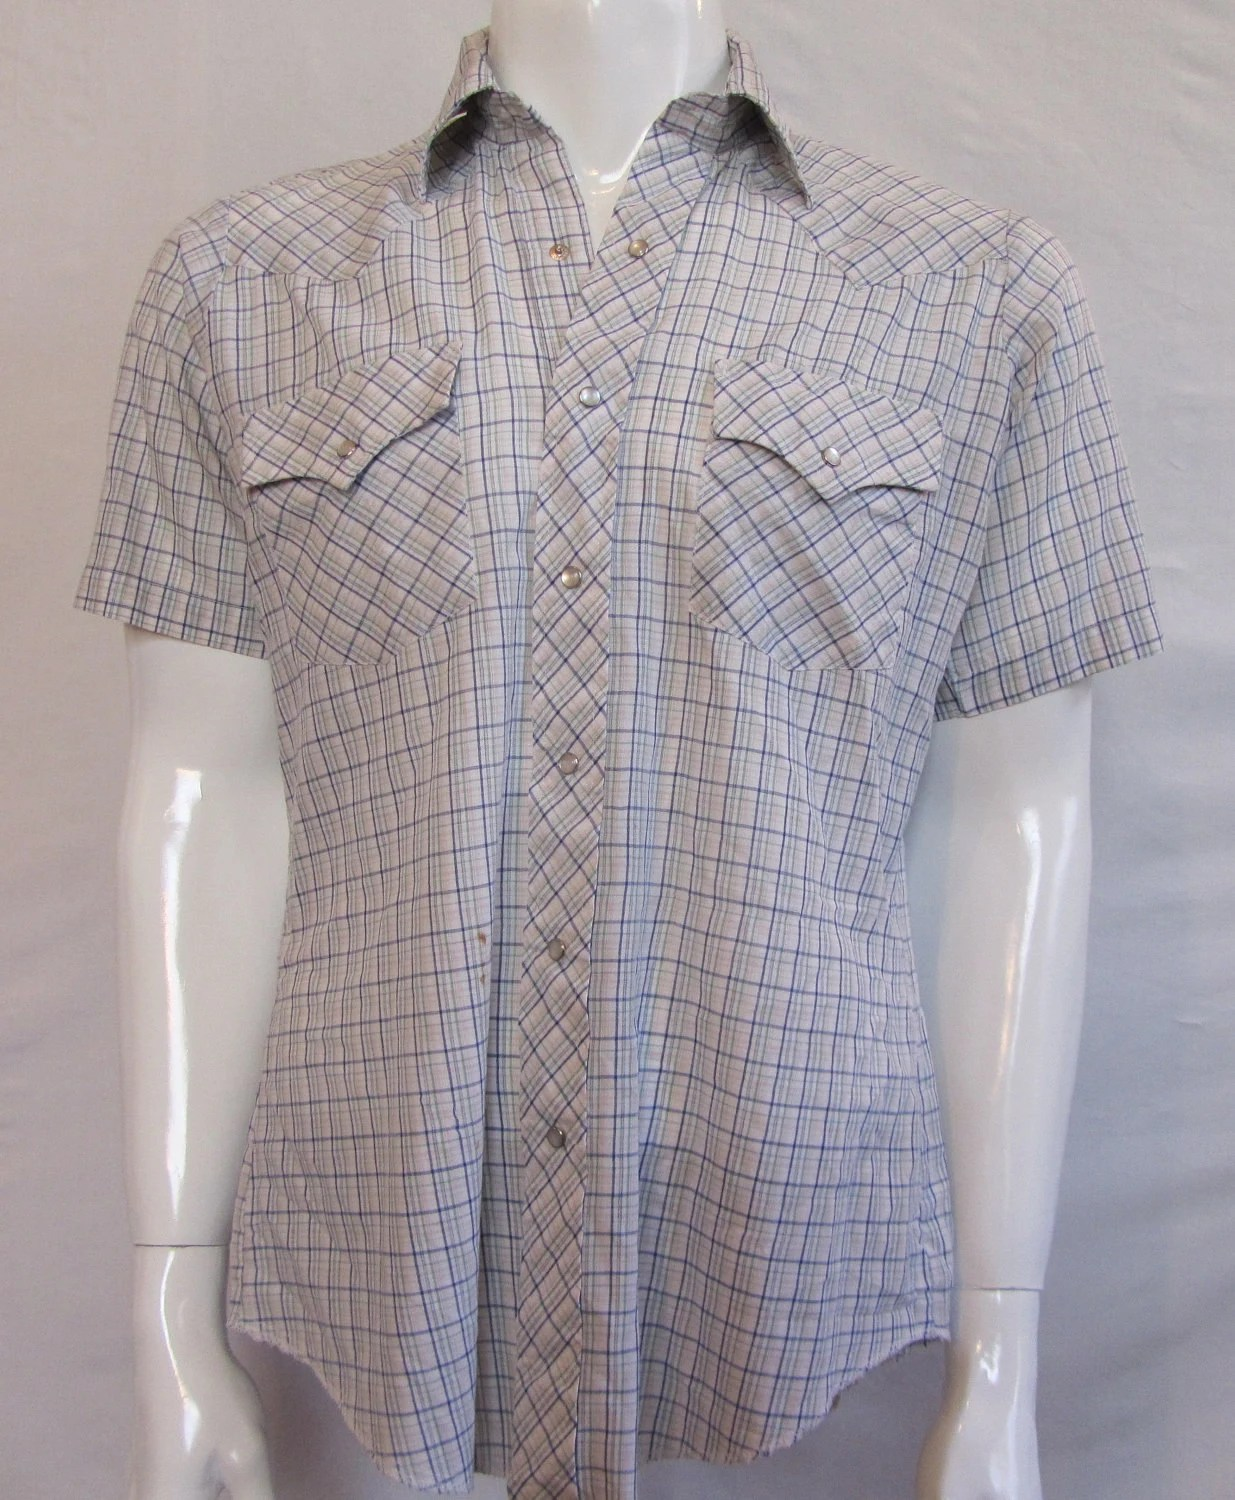 Mens MEDIUM cowboy shirt, Champion Westerns, vintage, short sleeves, white with navy and green plaid, pearl snaps